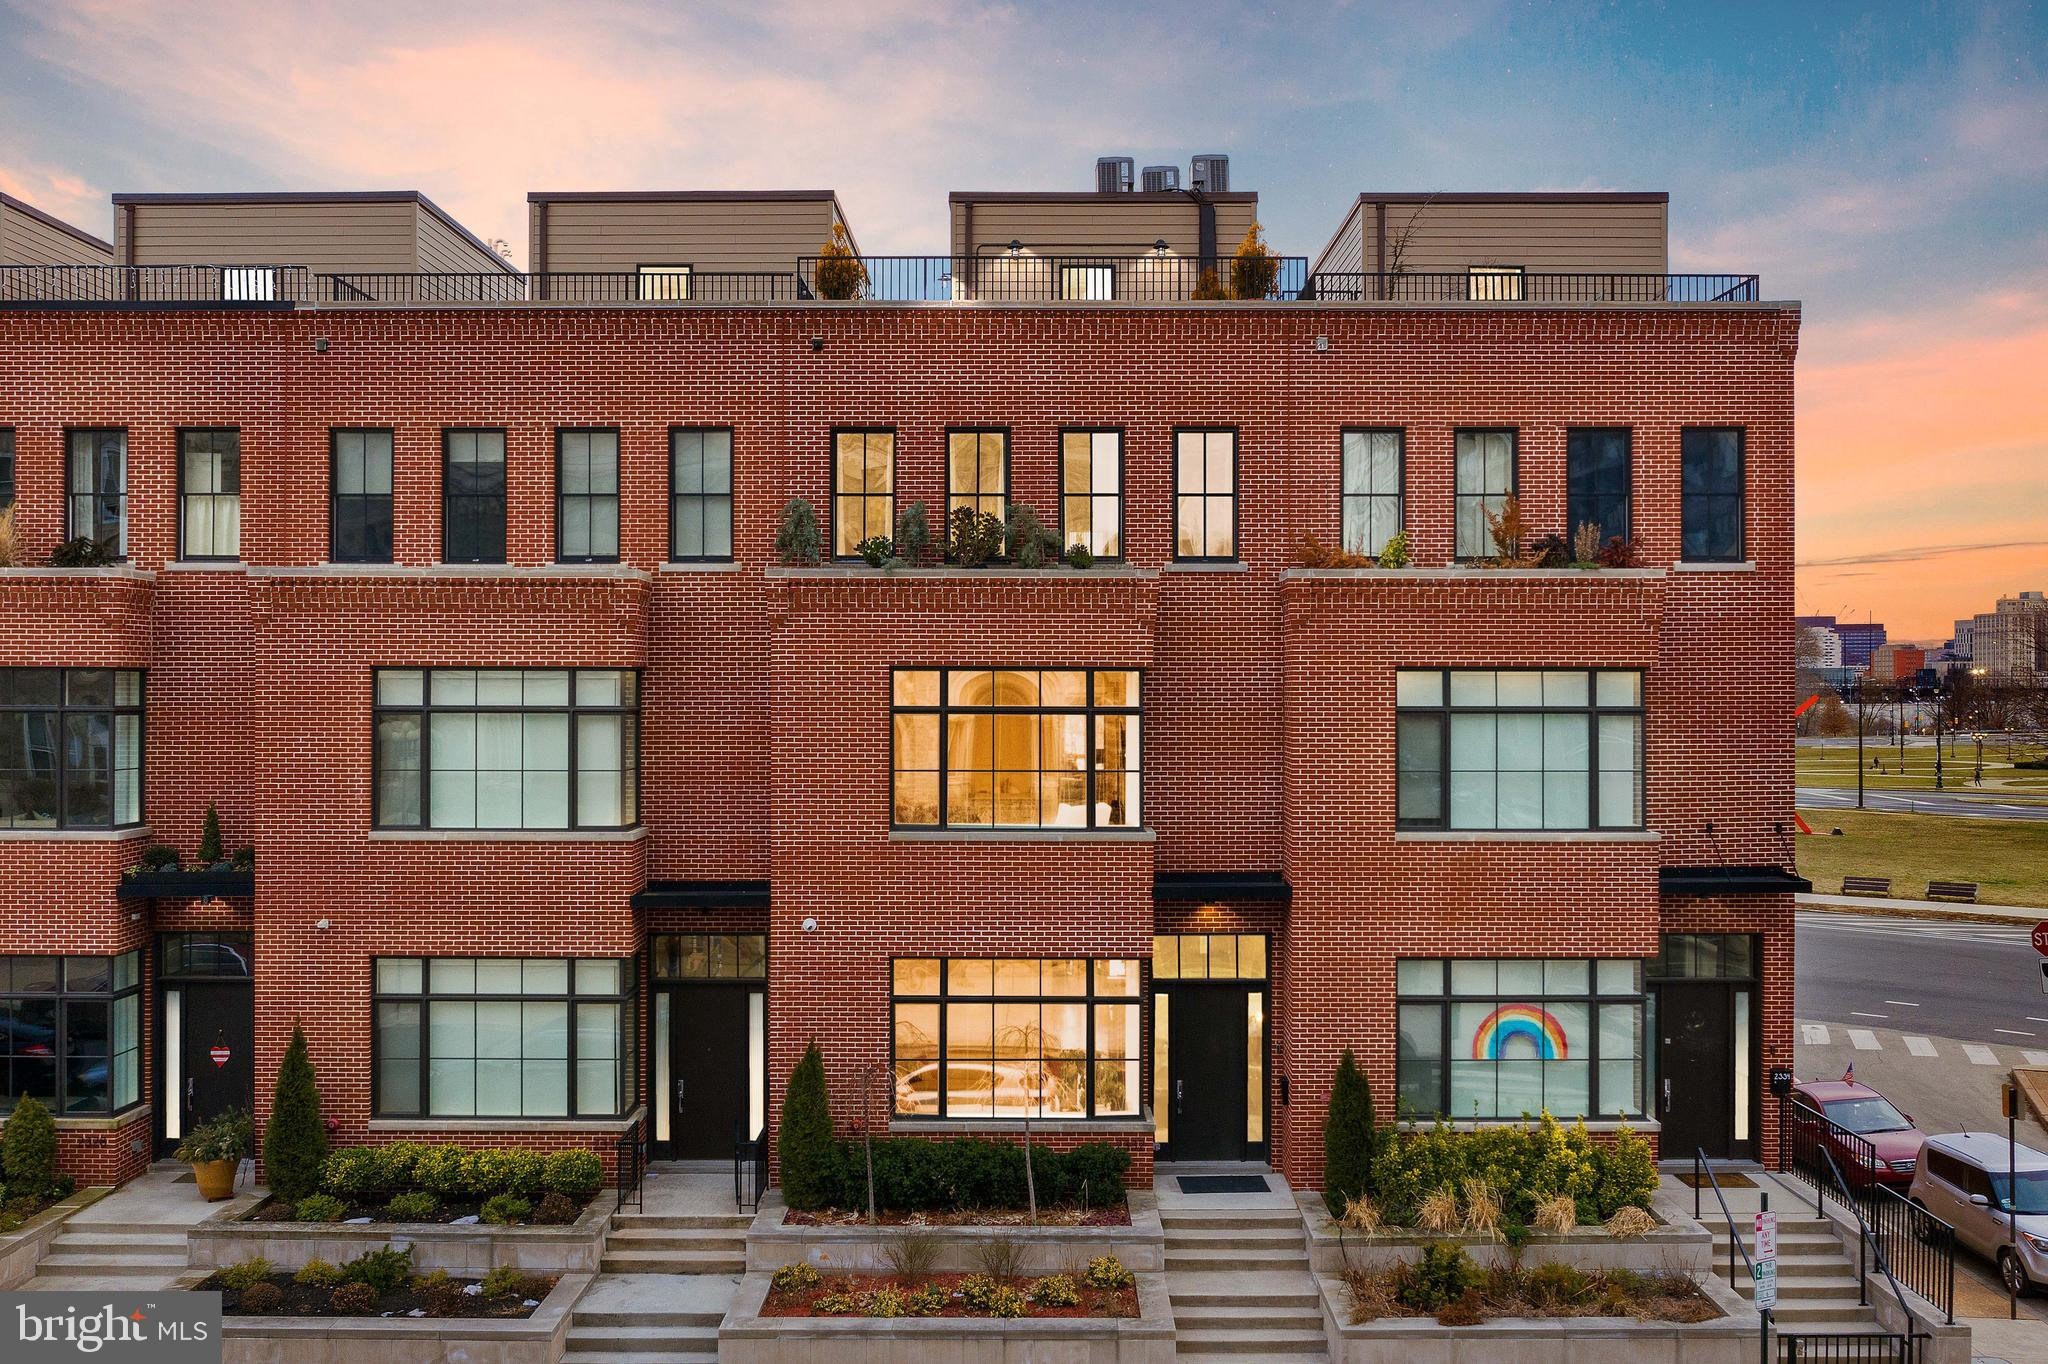 Welcome to one of the most desirable townhouses in all of Fairmount designed by Canno architecture and design group. Enter this 22-foot-wide home with over 4,400 square feet and you are immediately greeted with an inviting living area with a gas-burning fireplace and over 12-foot ceilings. The kitchen, built for a chef features white quartzite countertops, a Thermador 6-burner stovetop, a matching double wall oven, warming drawer, and a separate custom-built pantry for additional storage. The dining area is open to the kitchen, perfect for a large family gathering, and includes access to a south-facing outdoor balcony and wet bar. On the second floor, you will find 3 bedrooms, 3 bathrooms, and a large laundry room with a folding table and wall system. The third floor is home to the generously sized primary suite with a five-fixture bathroom and seating lounge. The top floor hosts a pilothouse with a full wet bar, powder room, and nearly 1,000 square foot Porcelain pavers roof deck with a pedestal system, water irrigation planters, a gas hook-up, outdoor lights, and electrical outlets. Each floor of the townhouse is interconnected with unobstructed views of Center City, the Barnes Foundation, and the Philadelphia Art Museum. The basement, currently shown as a family room or extra den is versatile and can be used as a gym, home office. Additional features of the home include an elevator, 2 car parking, an eight zone Sonos system, a savant smart system that controls the lights, security cameras, and garage door, all automated shades could be added to the system.  Tax abatement starting January 24th, 2017. All furniture and customized pieces are available with a separate Bill of sale.